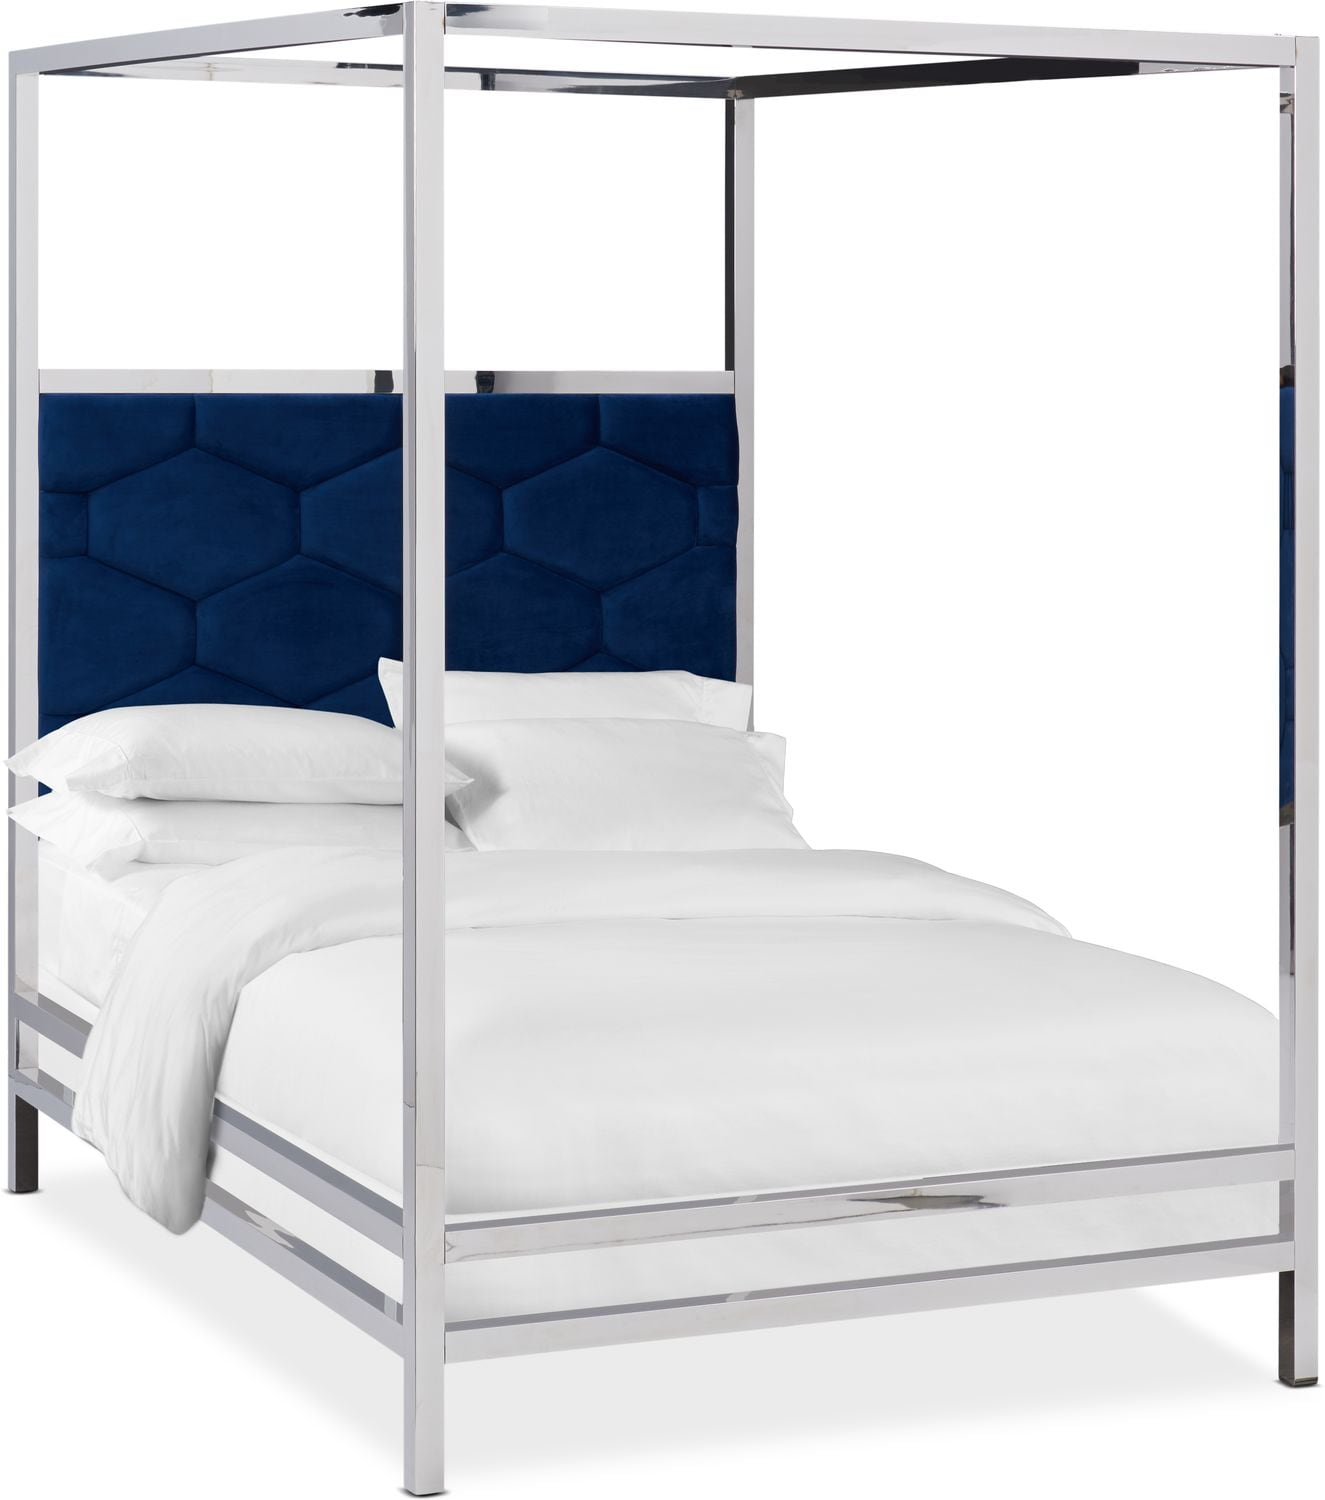 Bedroom Furniture - Concerto Canopy Bed